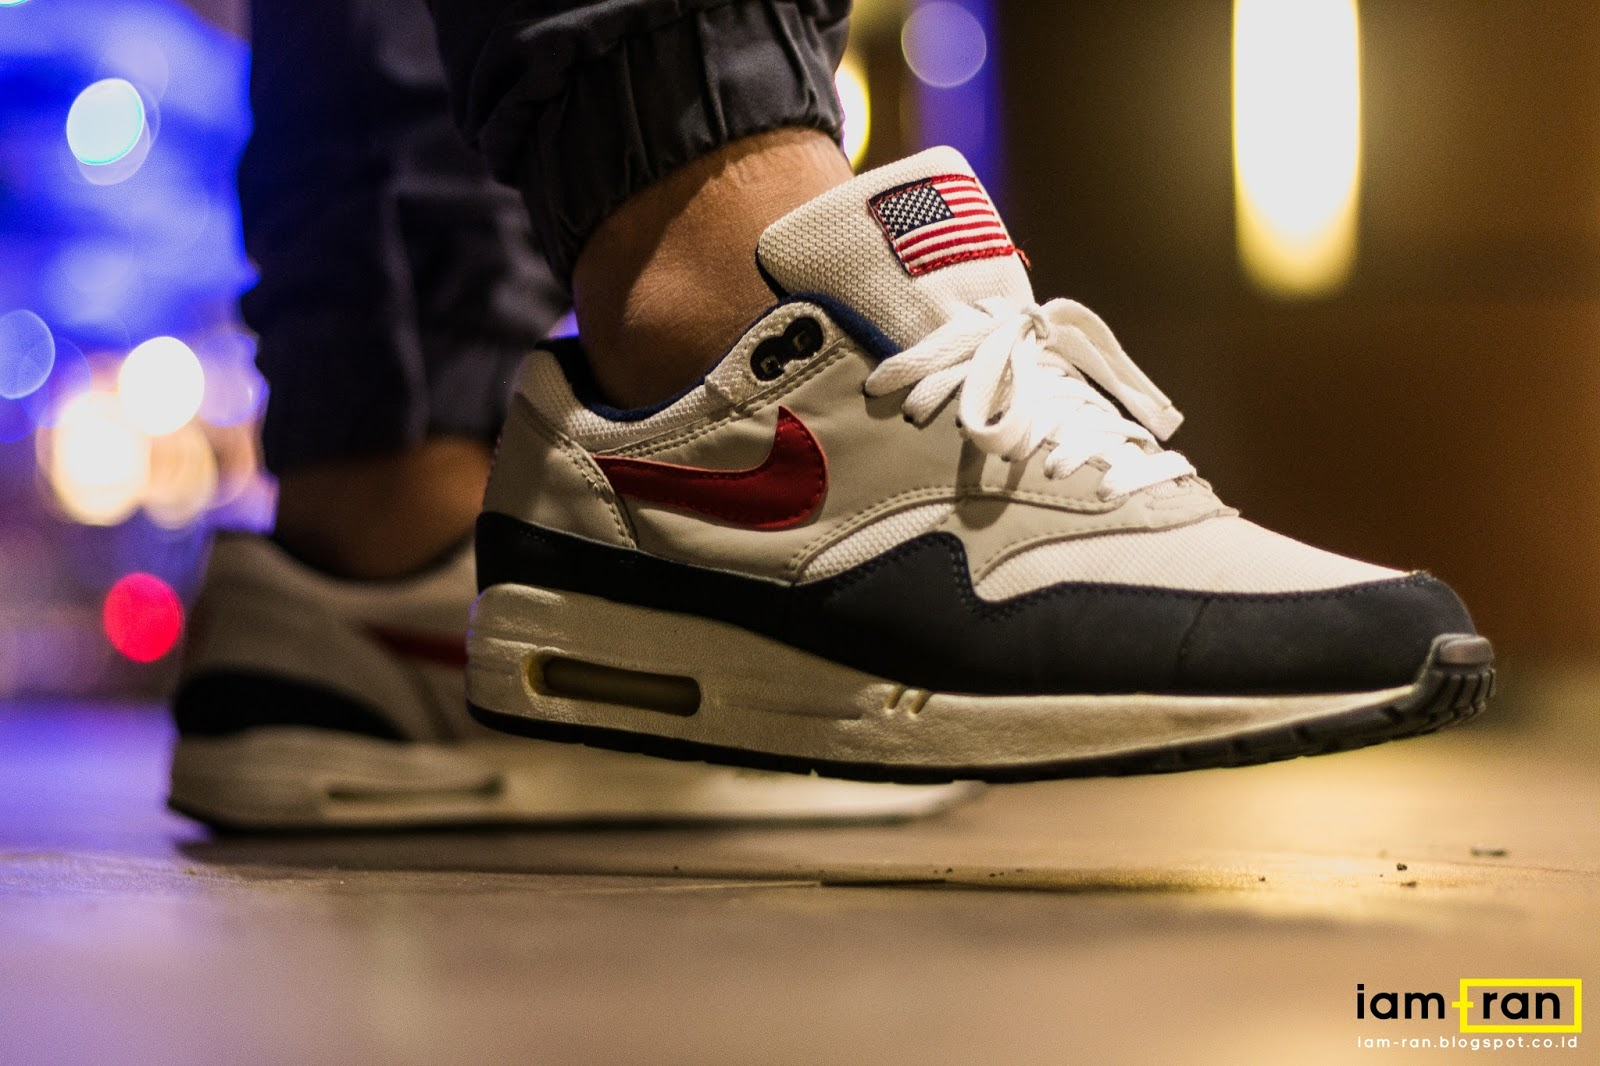 3e180b2138 IAM-RAN: ON FEET : Leo - Nike Air Max 1